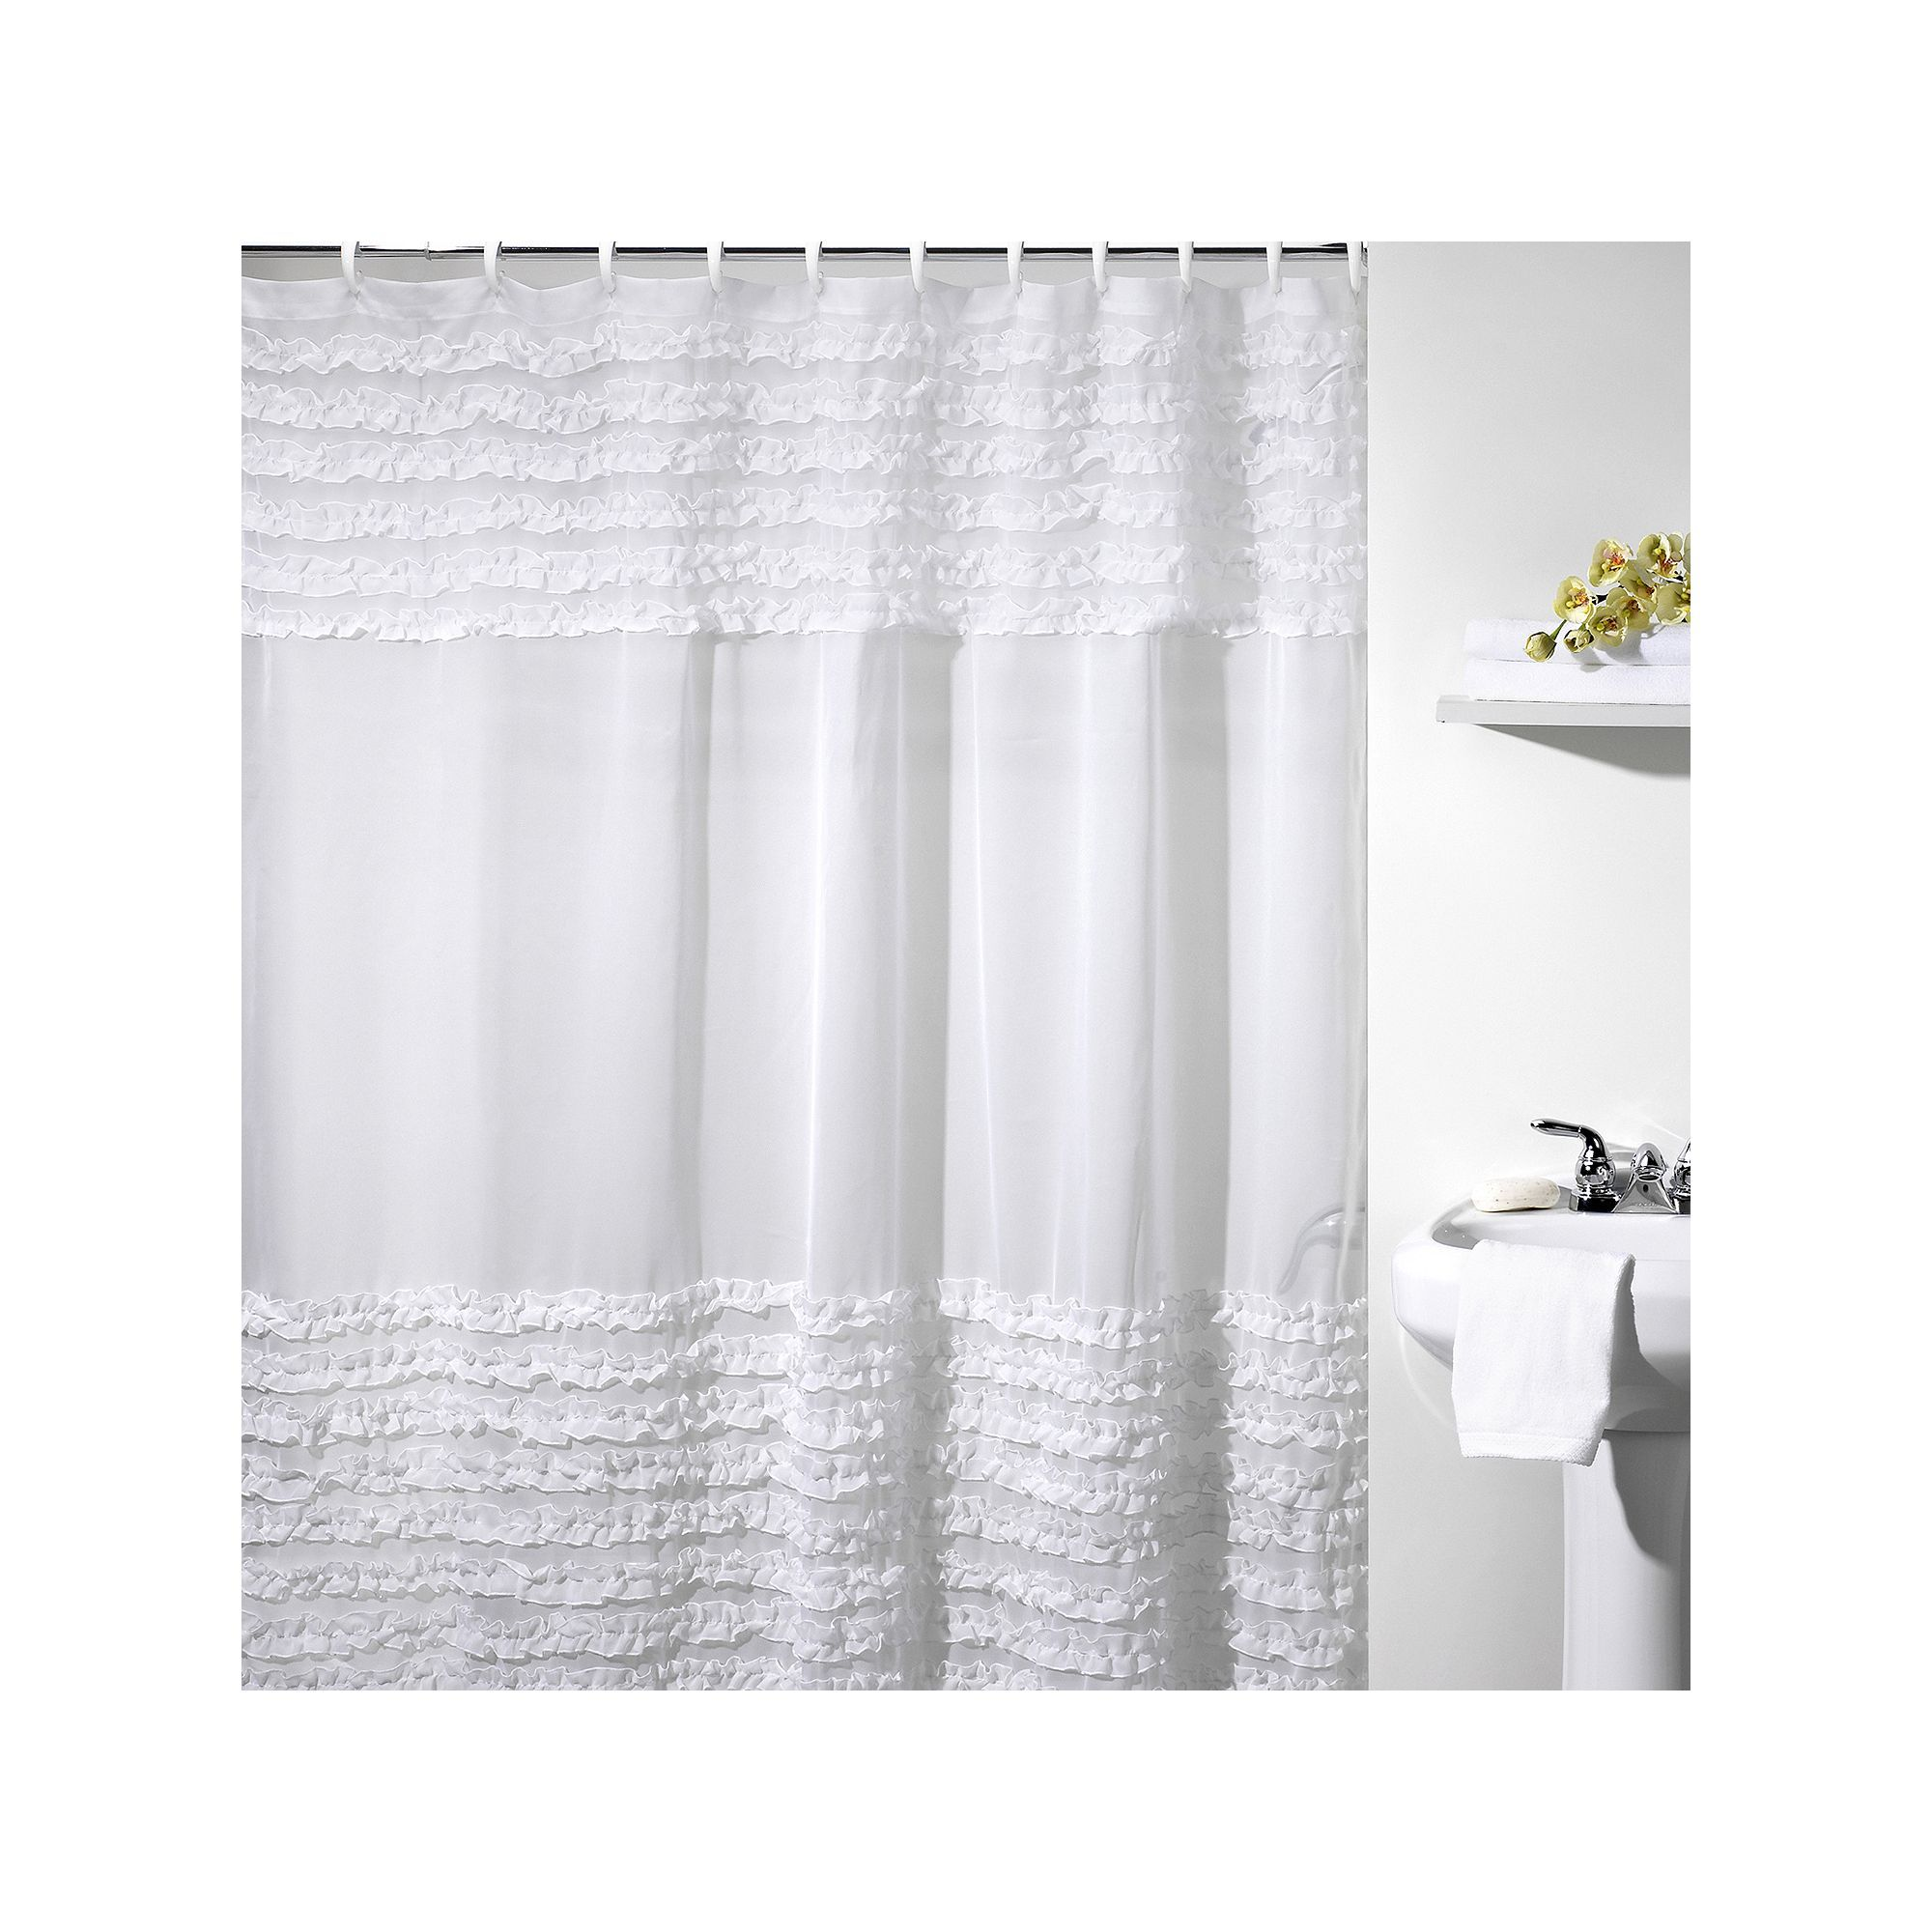 Creative Bath Ruffles Fabric Shower Curtain White Ruffle Shower